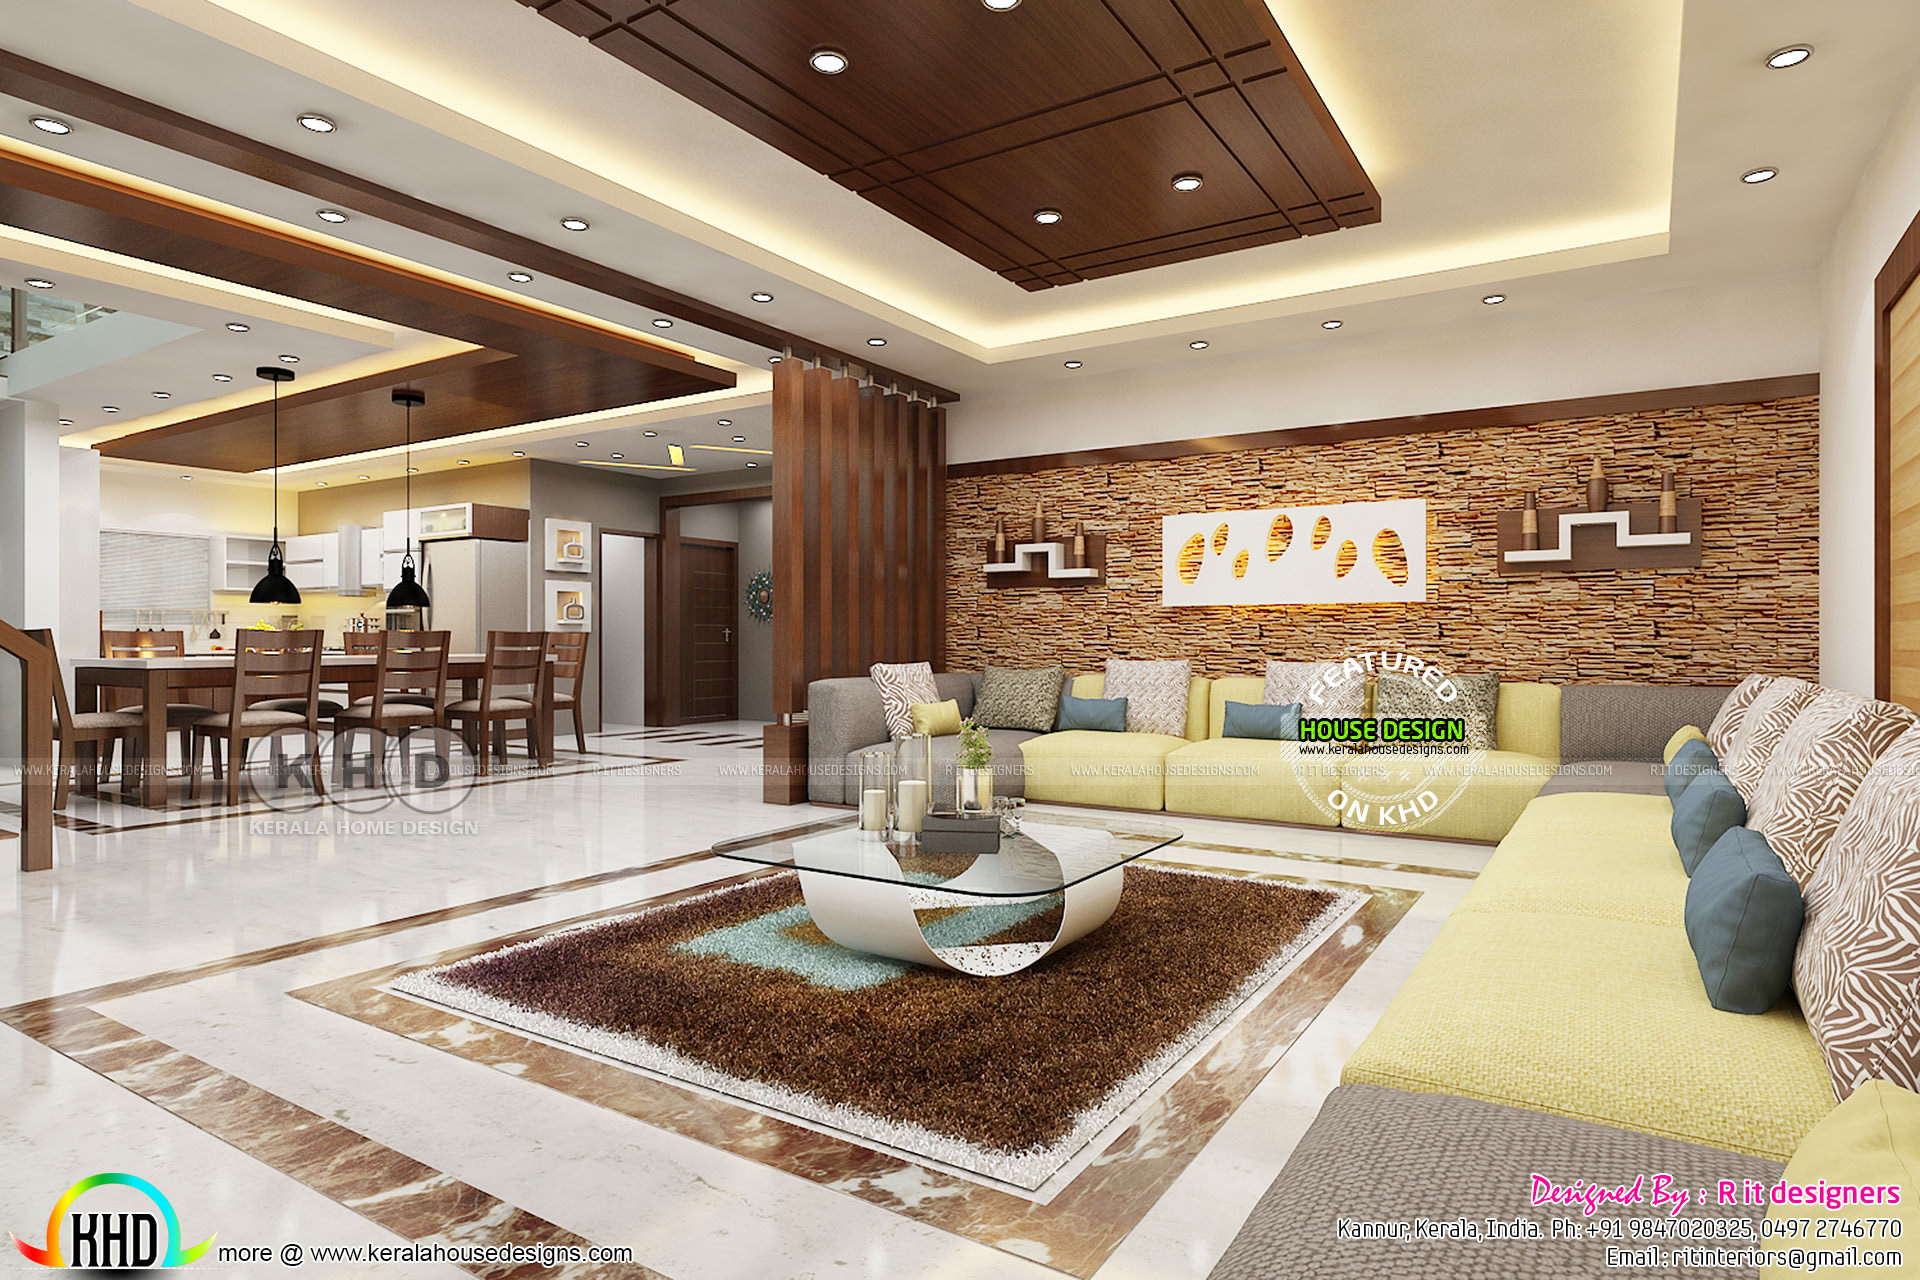 House design and inside interior kerala home design and for Best living room designs india